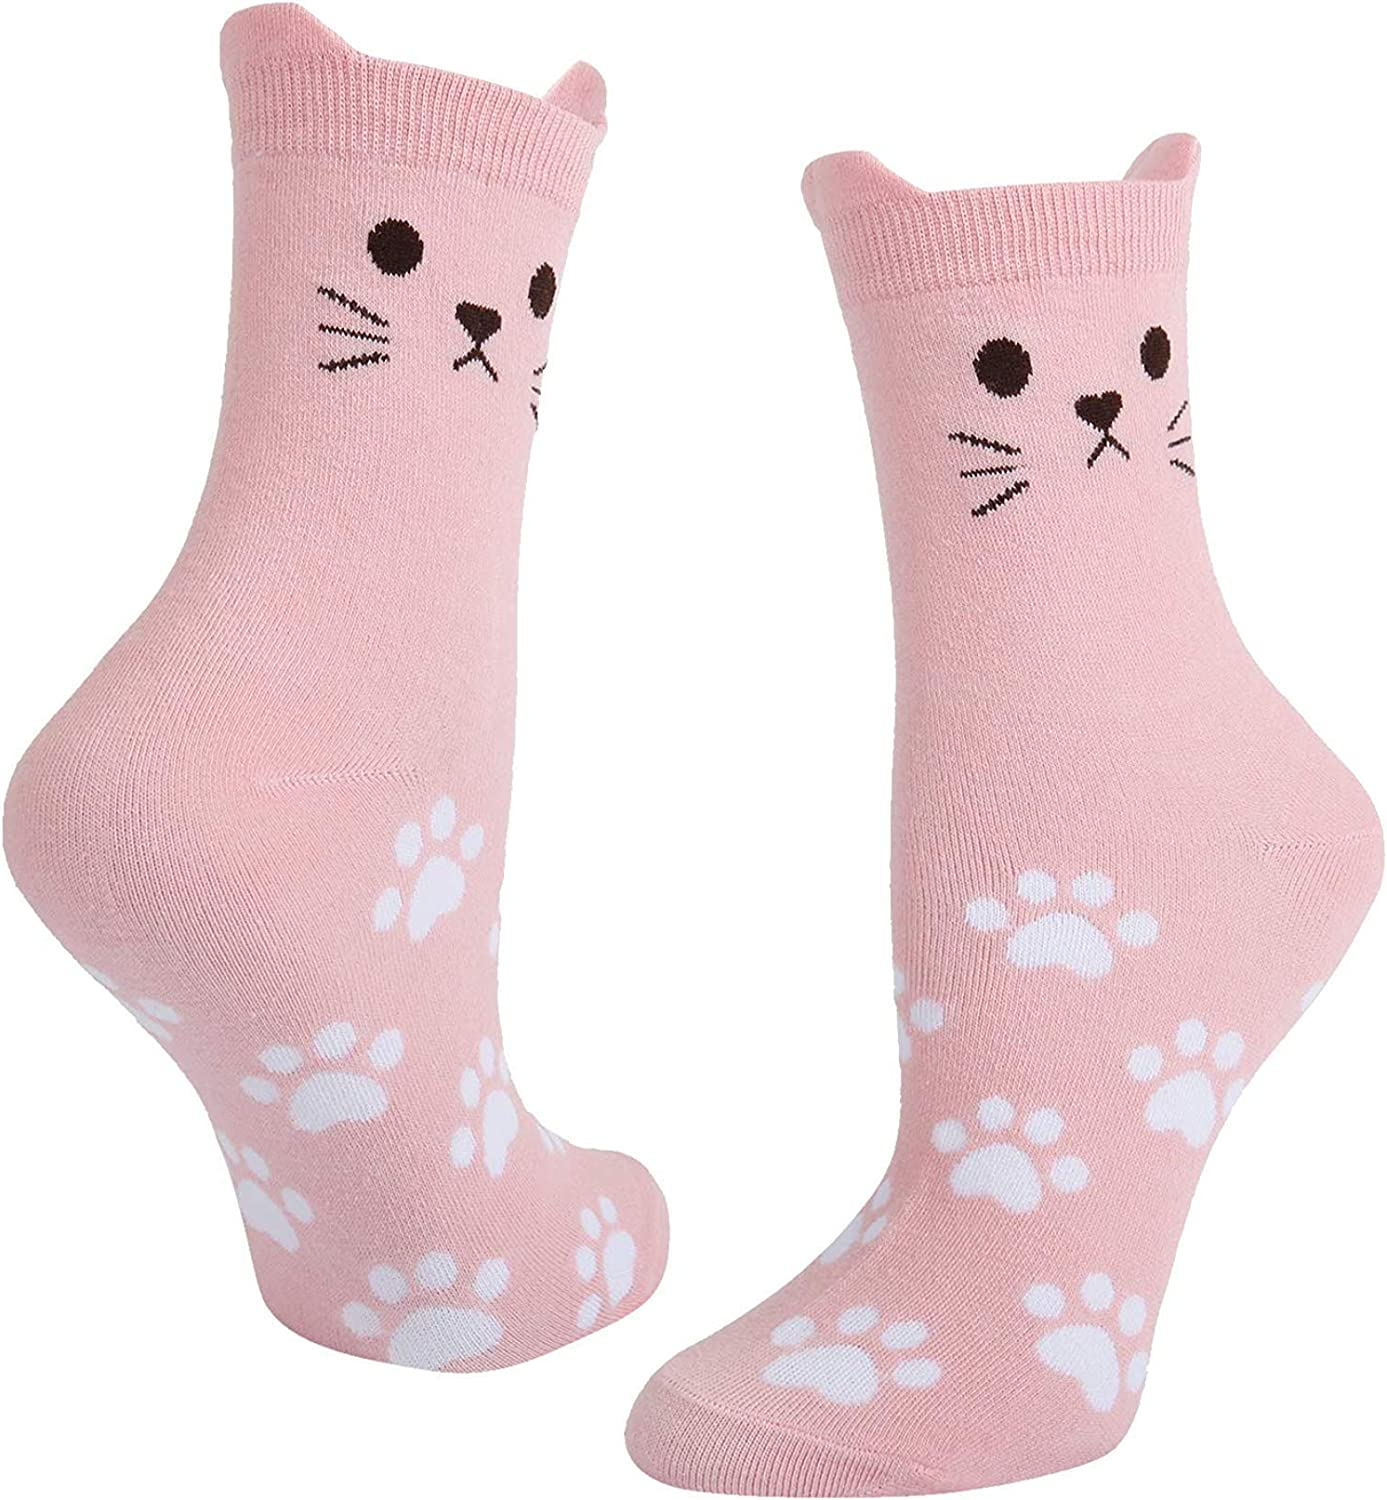 SOCKFUN NoveltyCute Cat Animals Colorful Socks Value Pack Gift for Girls